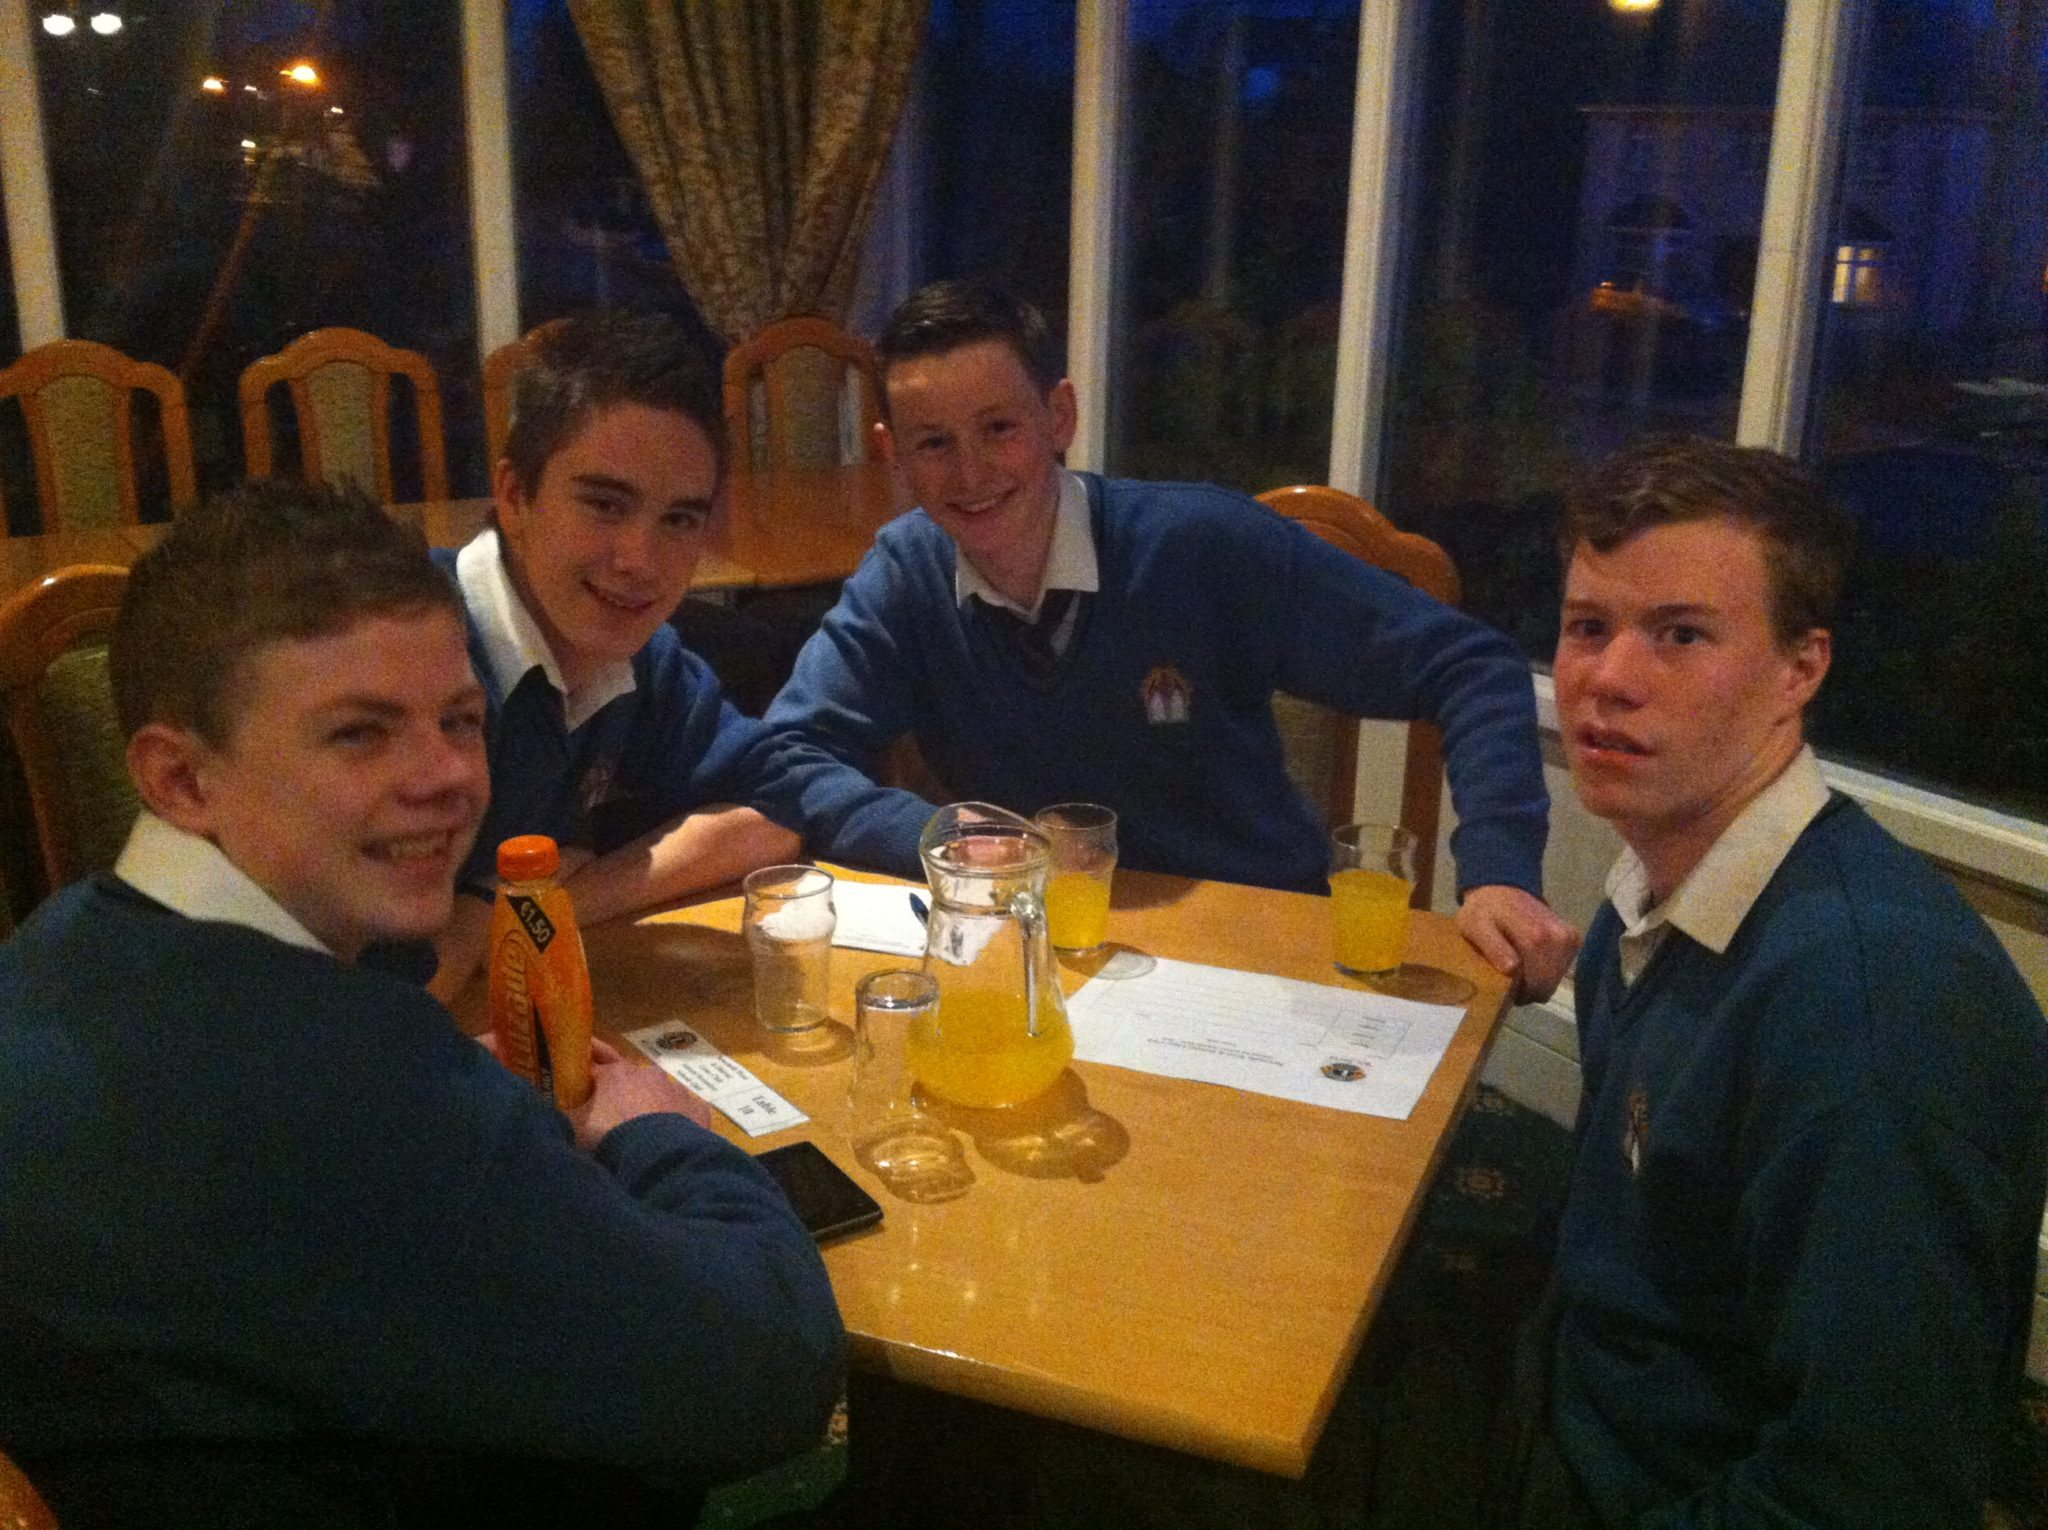 Desmond College Students at the Lyons Quiz Night 2014